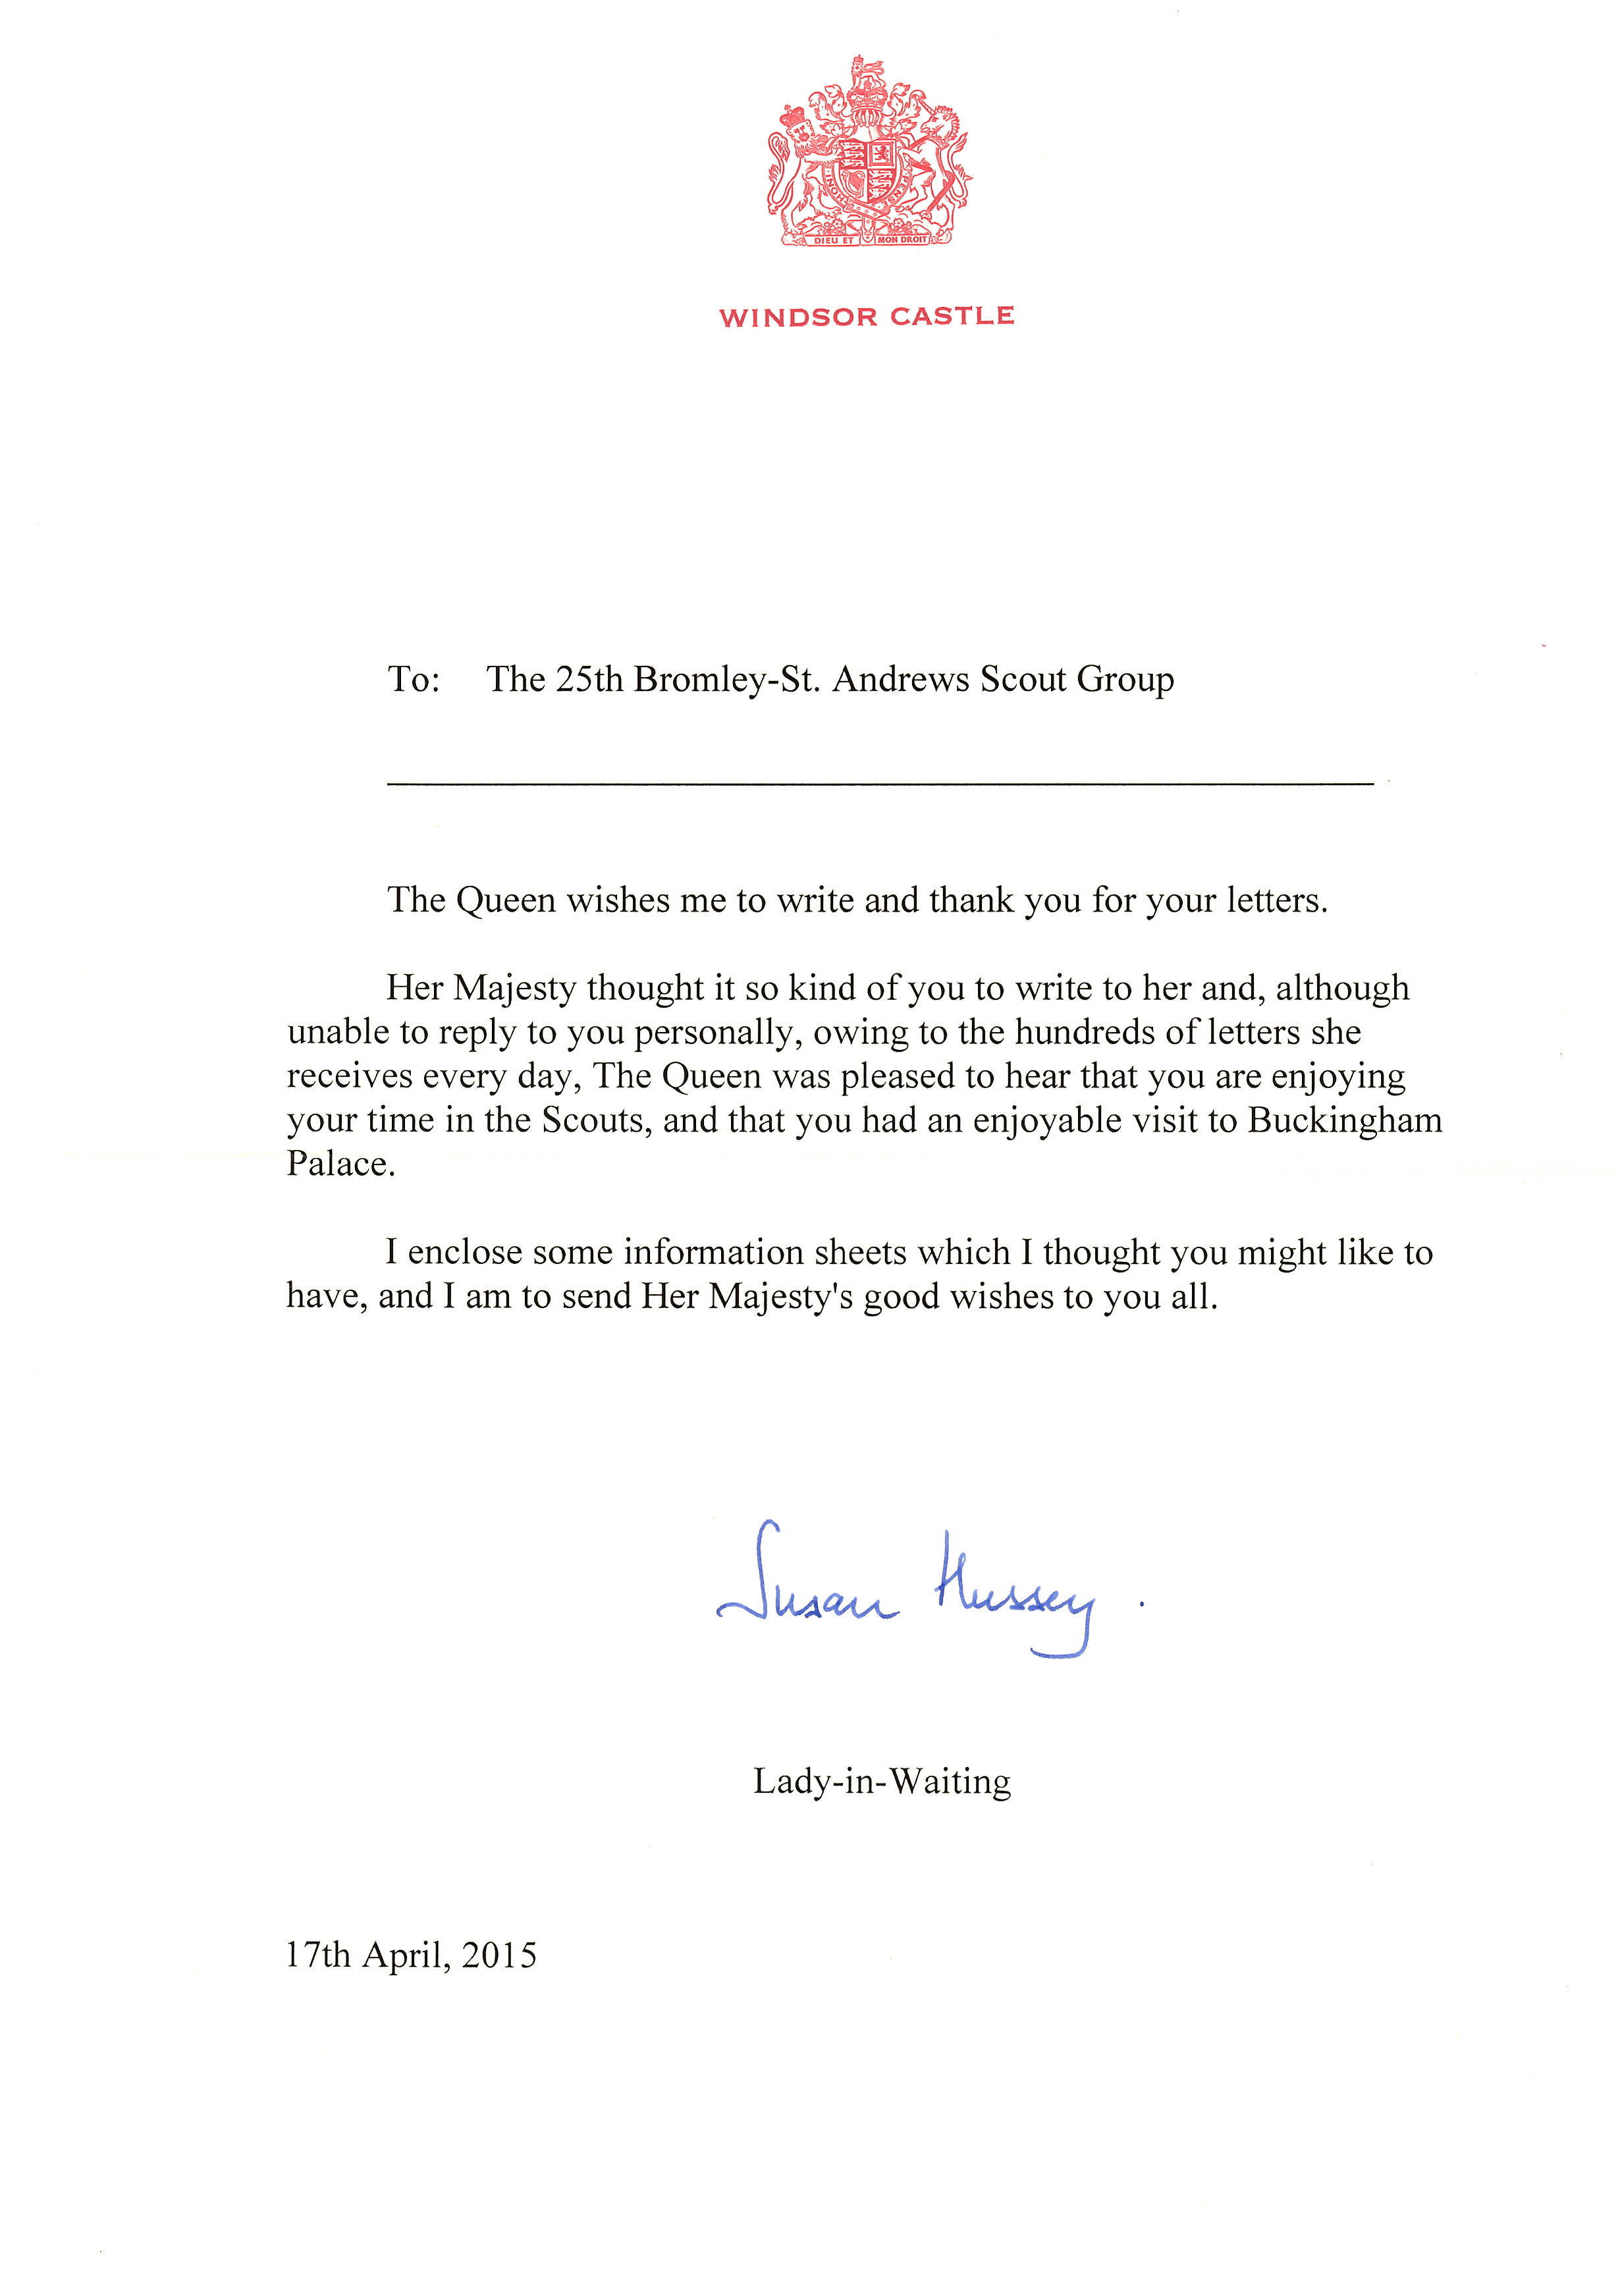 Cubs Get A Letter From The Queen